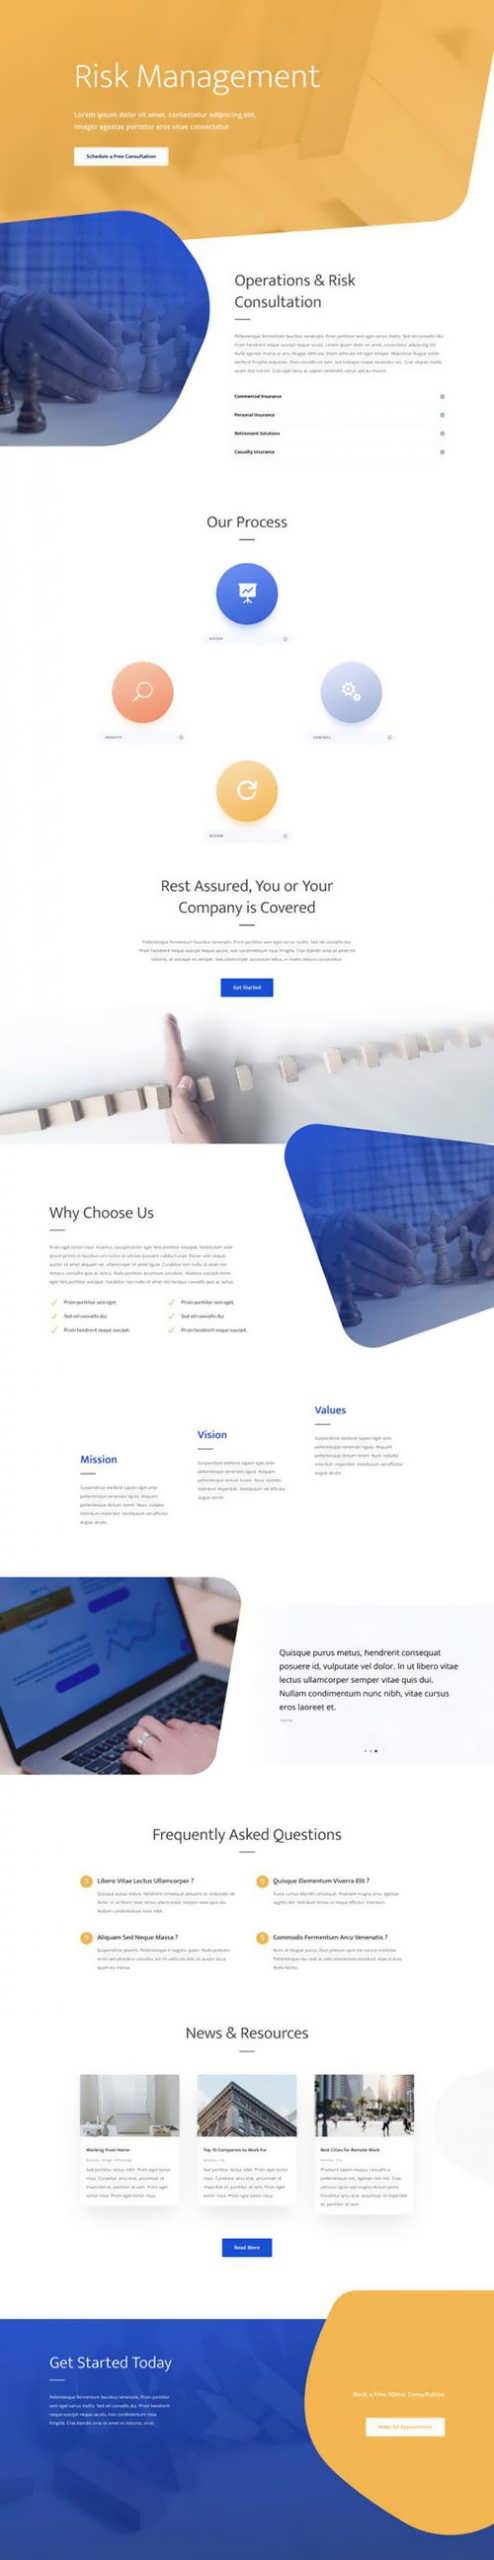 risk management landing page scaled